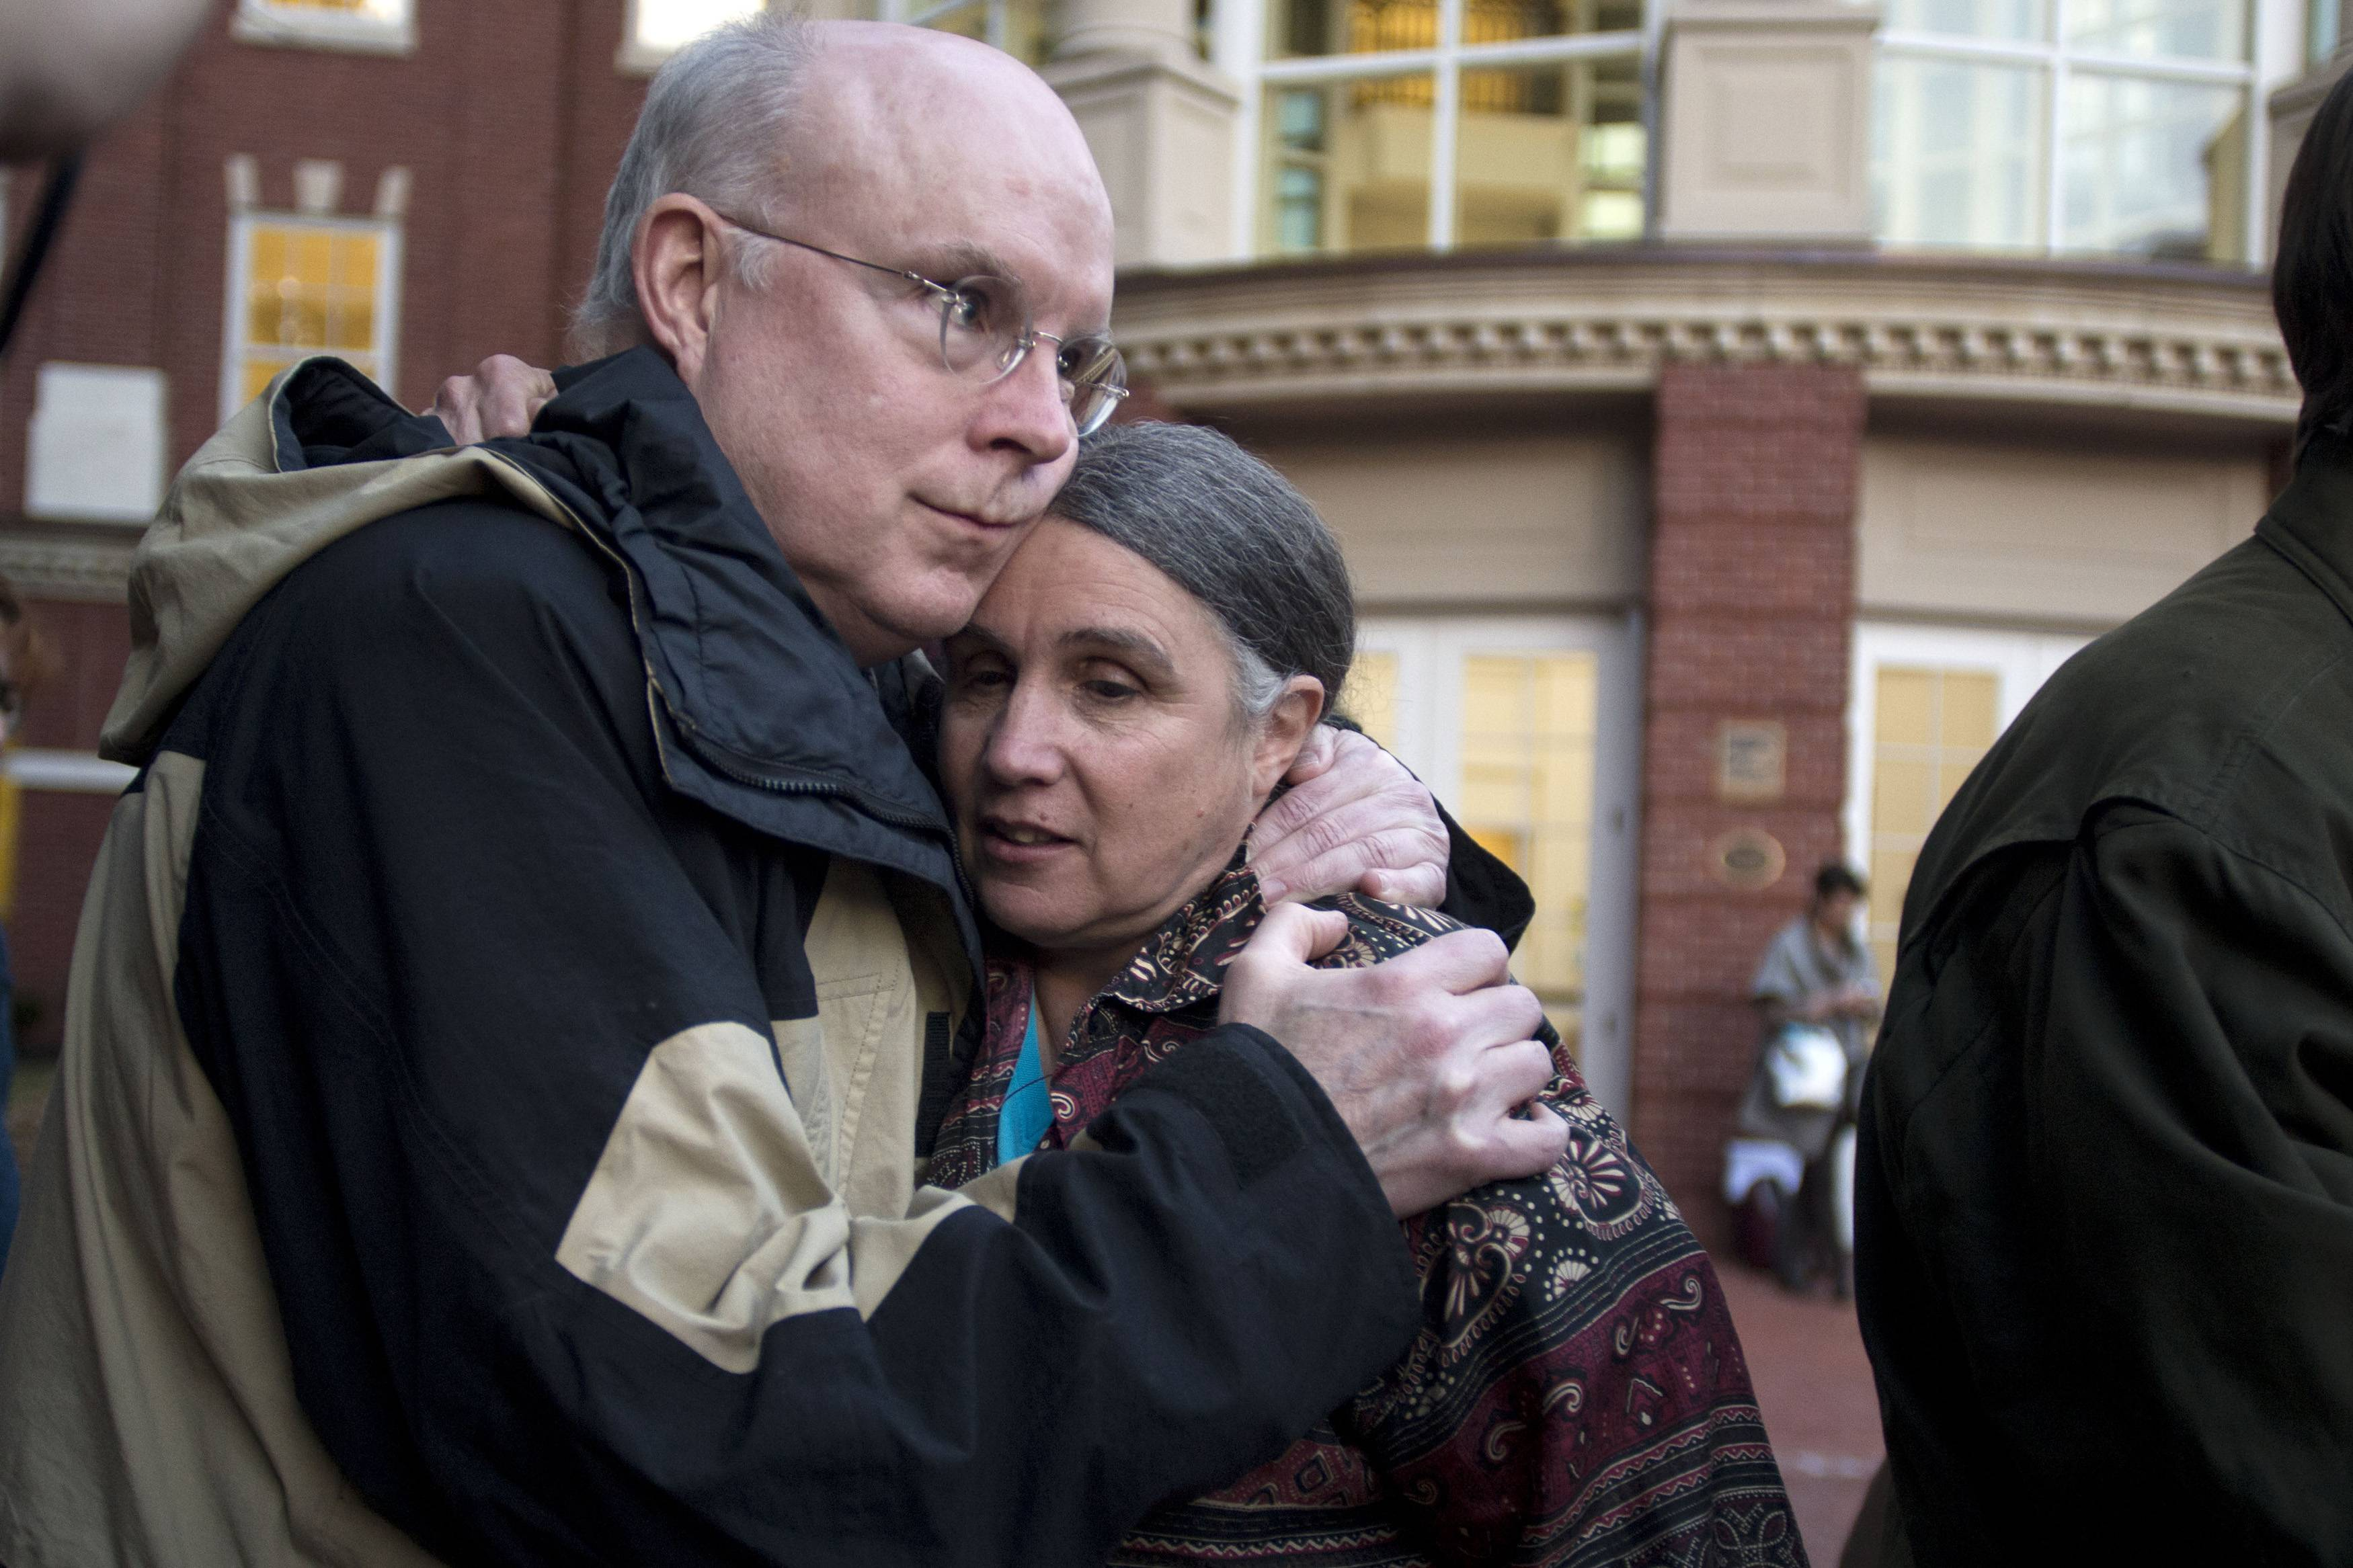 William Quigley and Michele Naar-Obed hug outside the Federal Courthouse after Naar-Obed's husband, Greg Boertje-Obed and two others were sentenced for the role they played in a July 2012 break-in at the Y-12 National Security Complex in Knoxville, Tenn., Tuesday, Feb. 18, 2014.